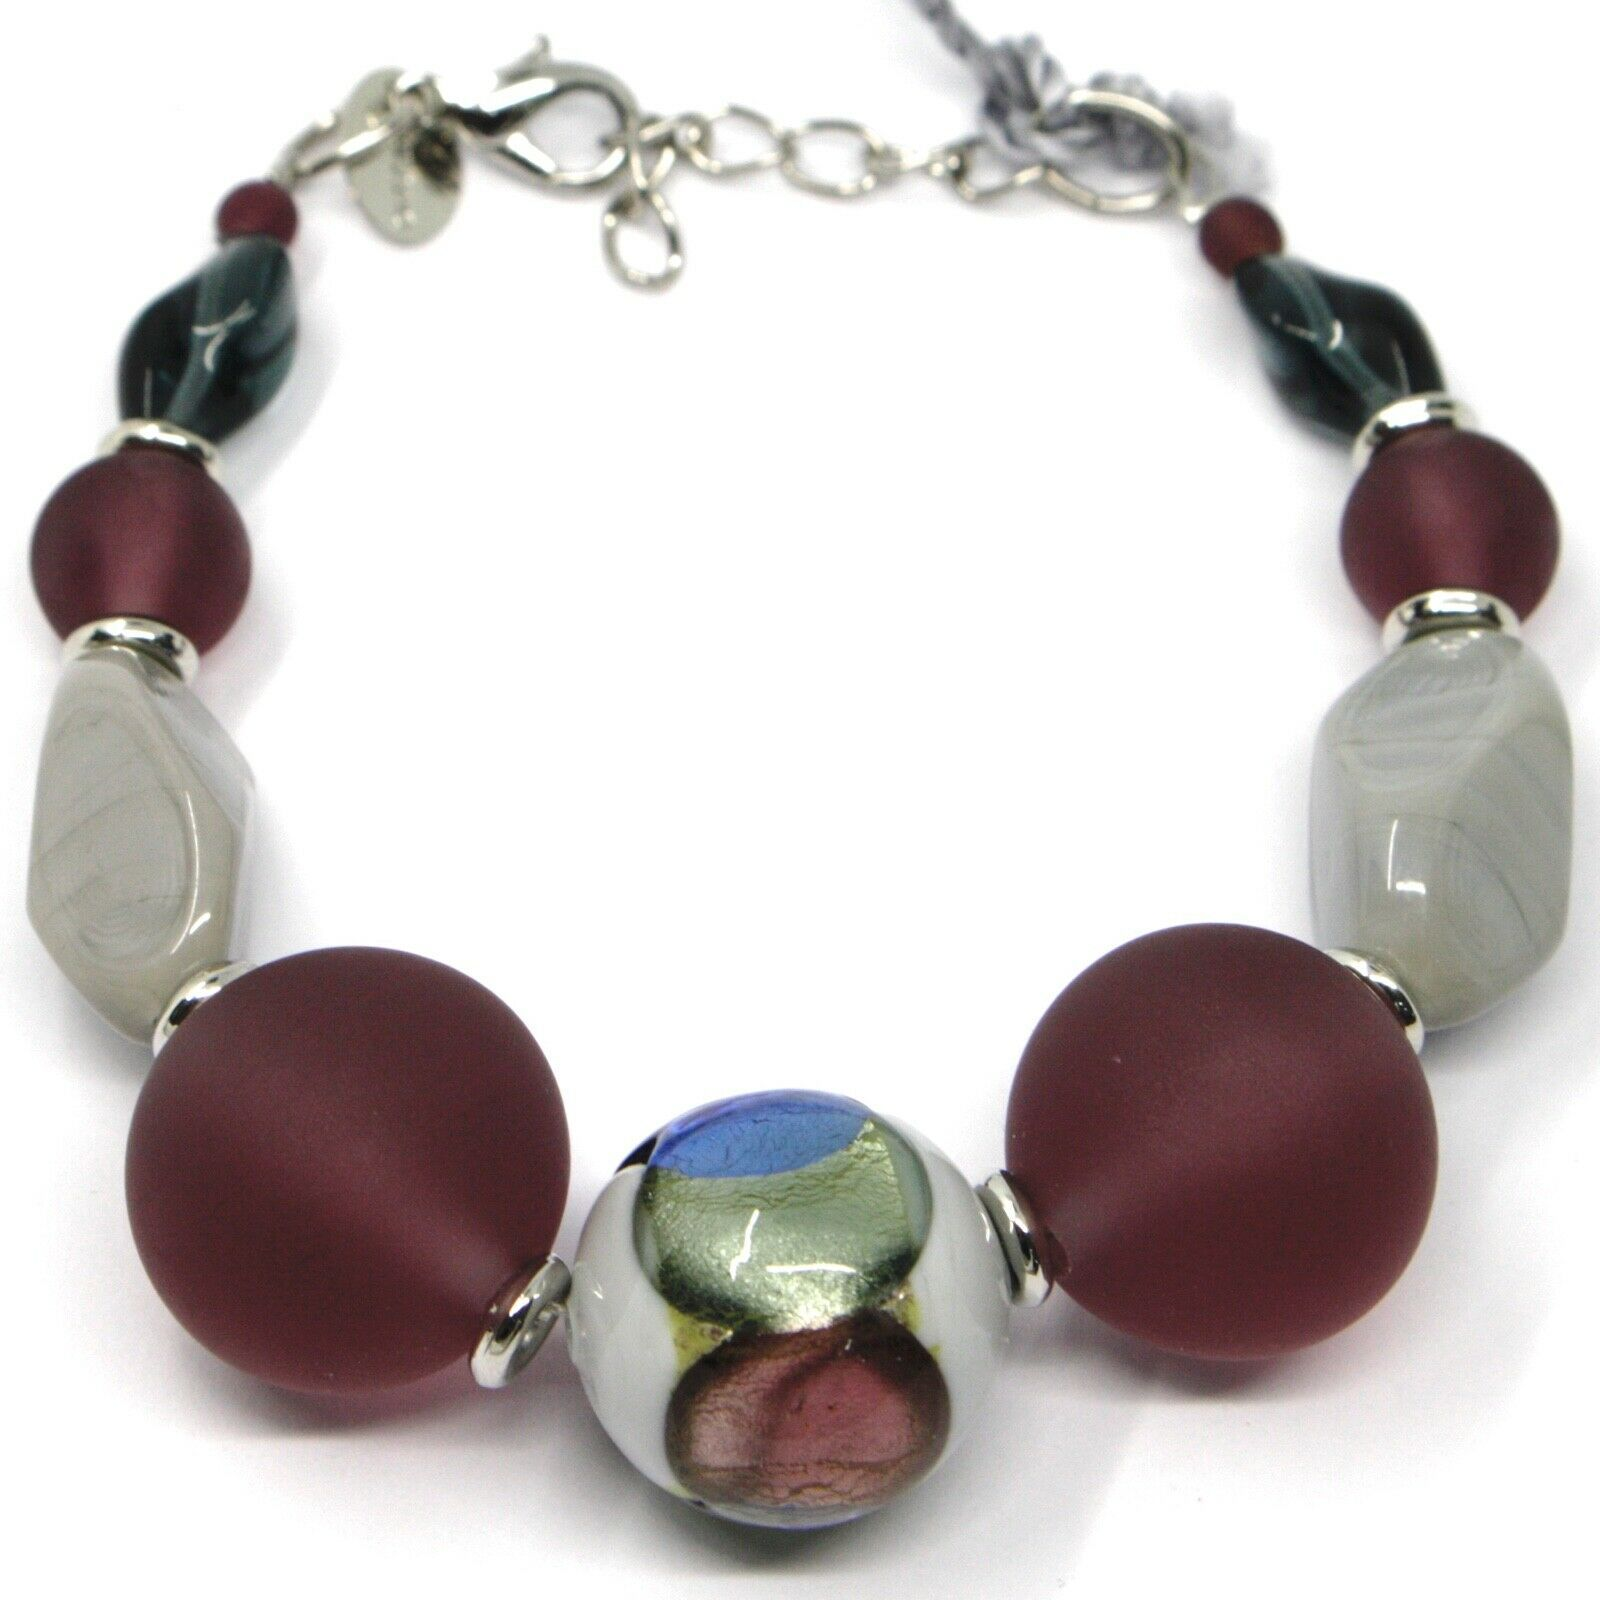 BRACELET GRAY PURPLE MURANO GLASS SPHERE & SILVER LEAF, MADE IN ITALY, 18 cm